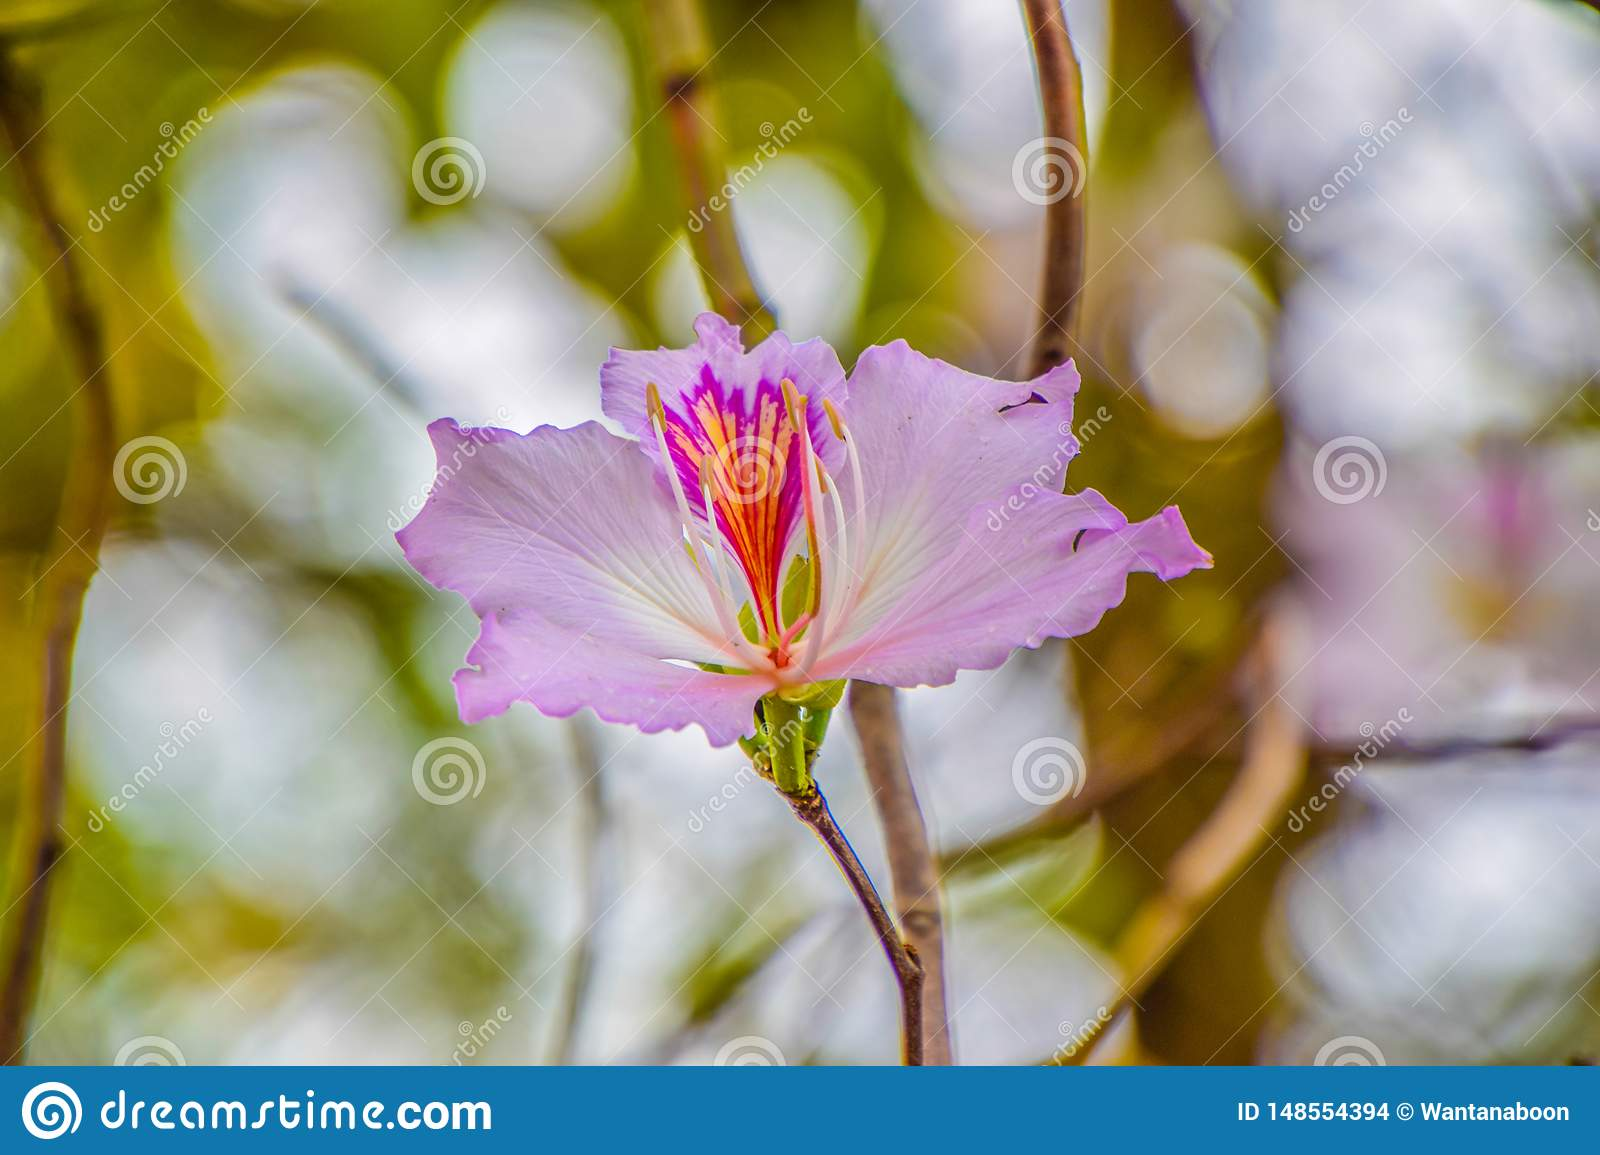 Beautiful flower on tree, Scientific name : Bauhinia variegata, Close up of purple flower on blurred nature background